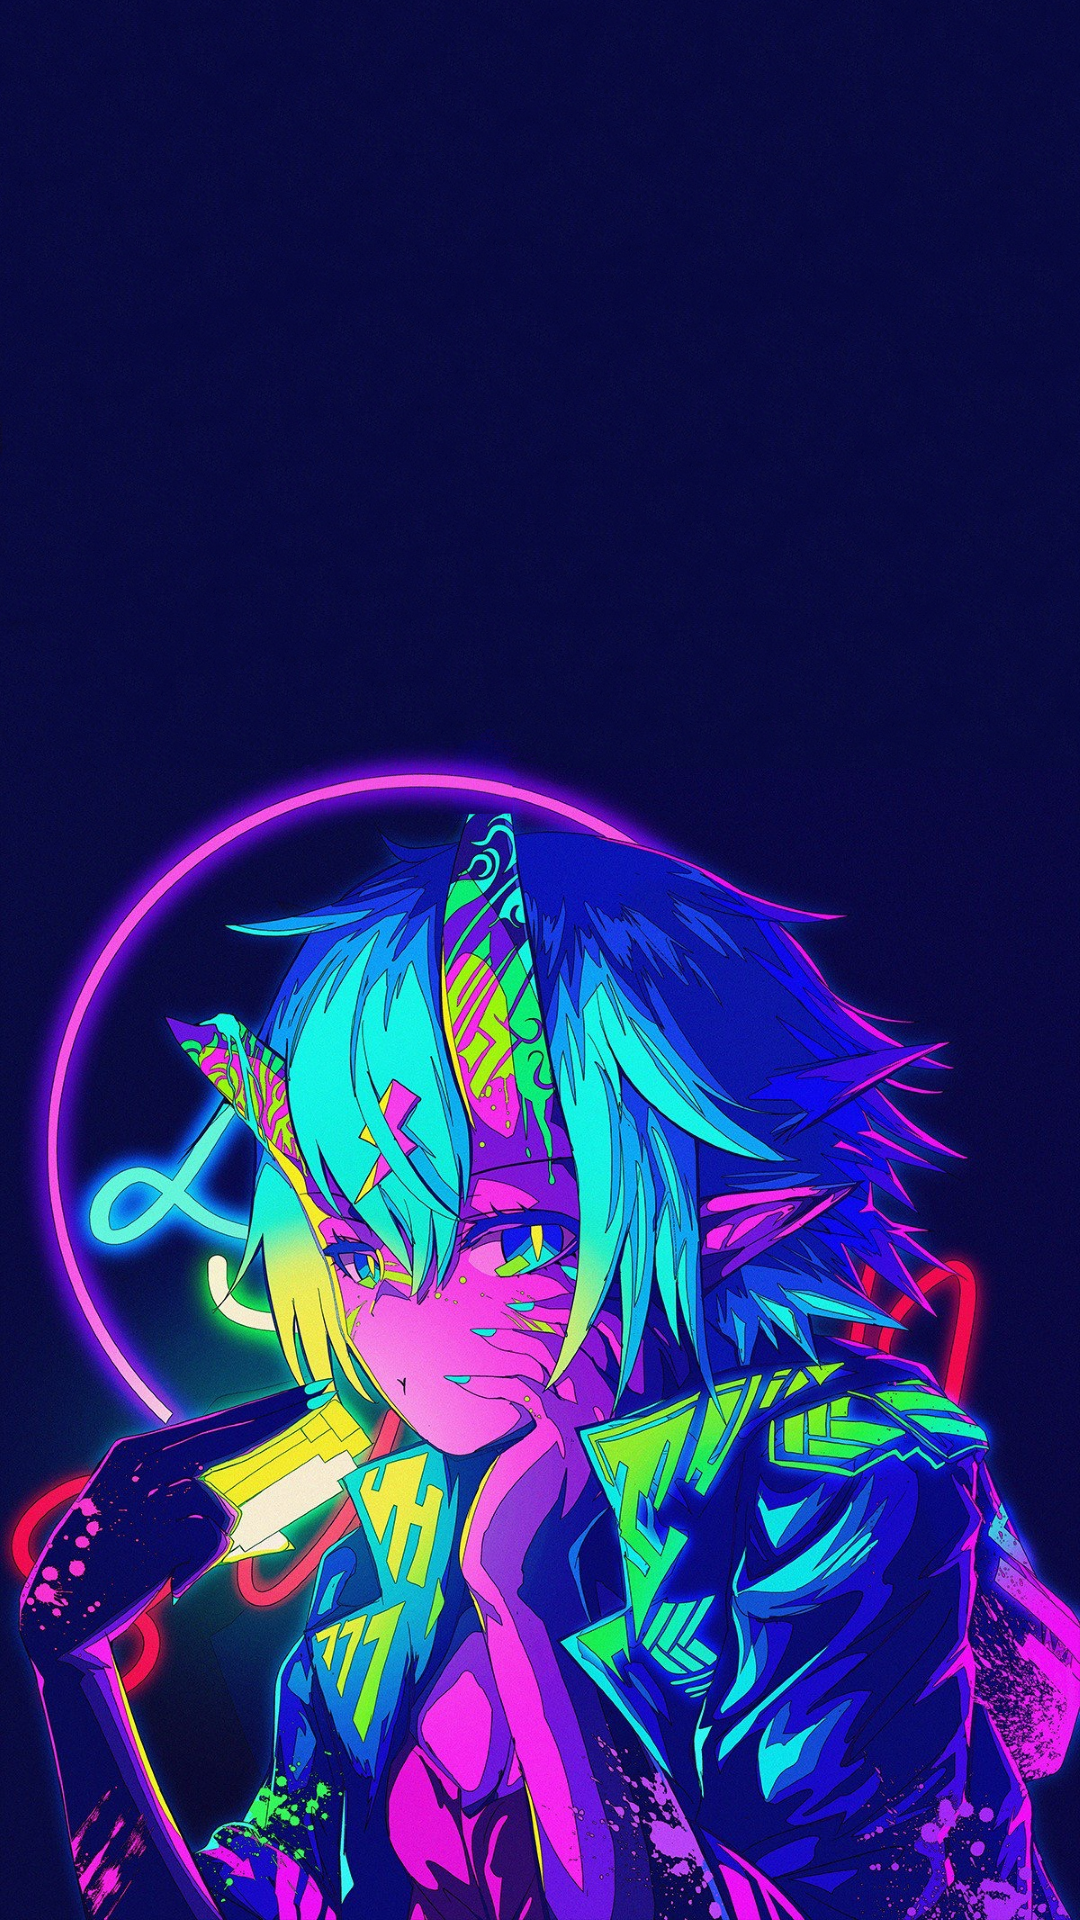 Neon Anime HD Wallpapers - Wallpaper Cave